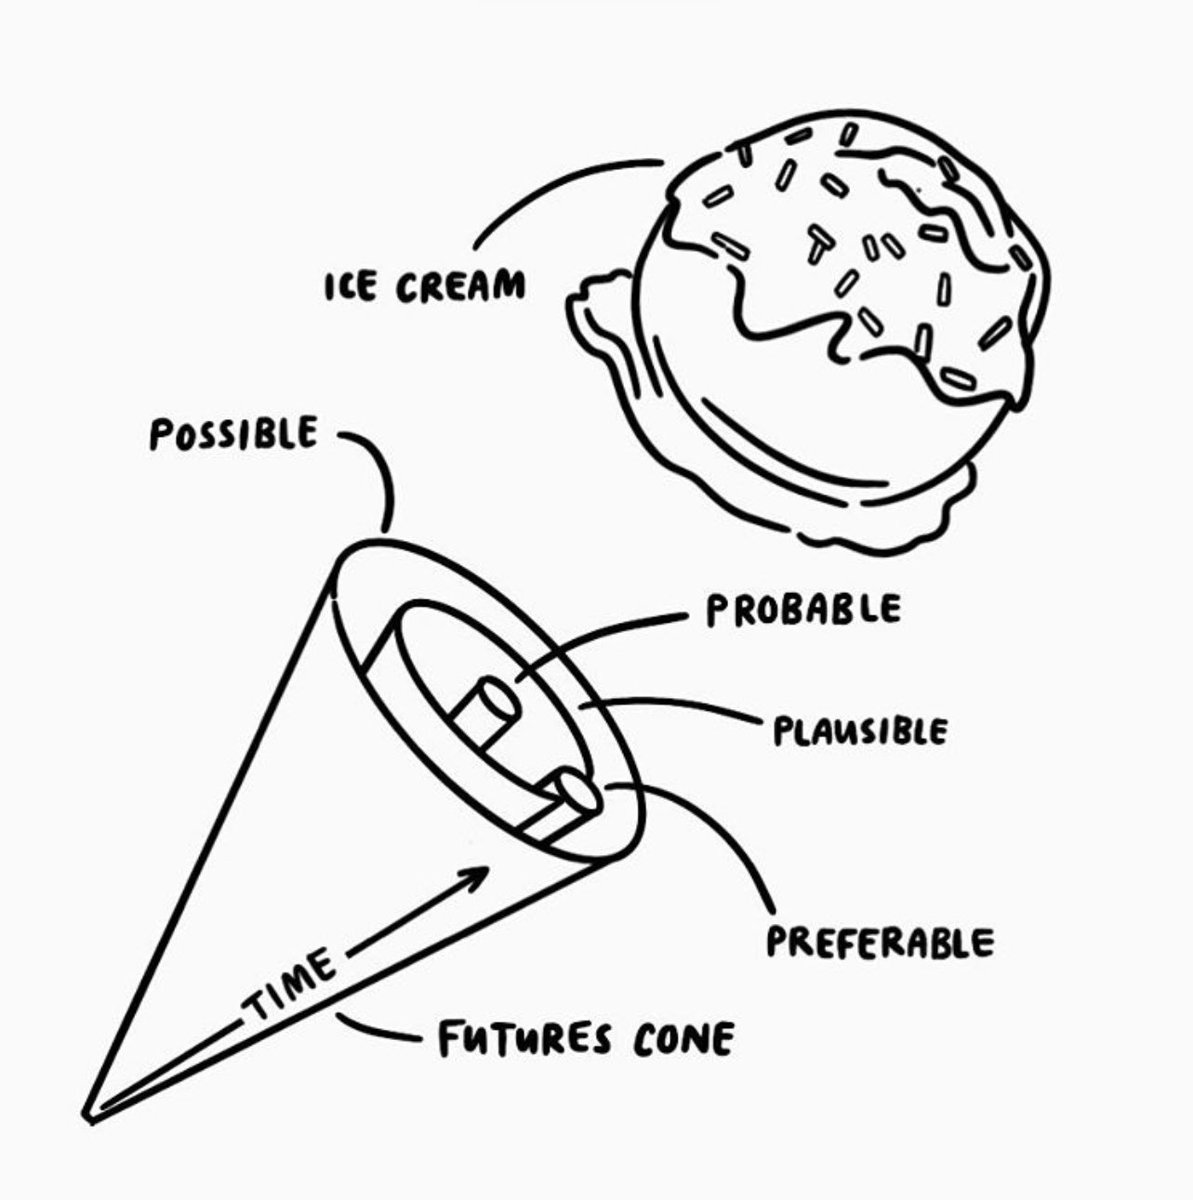 Figured some of my foresight peeps would get a kick out of this Futures Cone diagram from @natalieharney. https://t.co/jhT70MnMiO